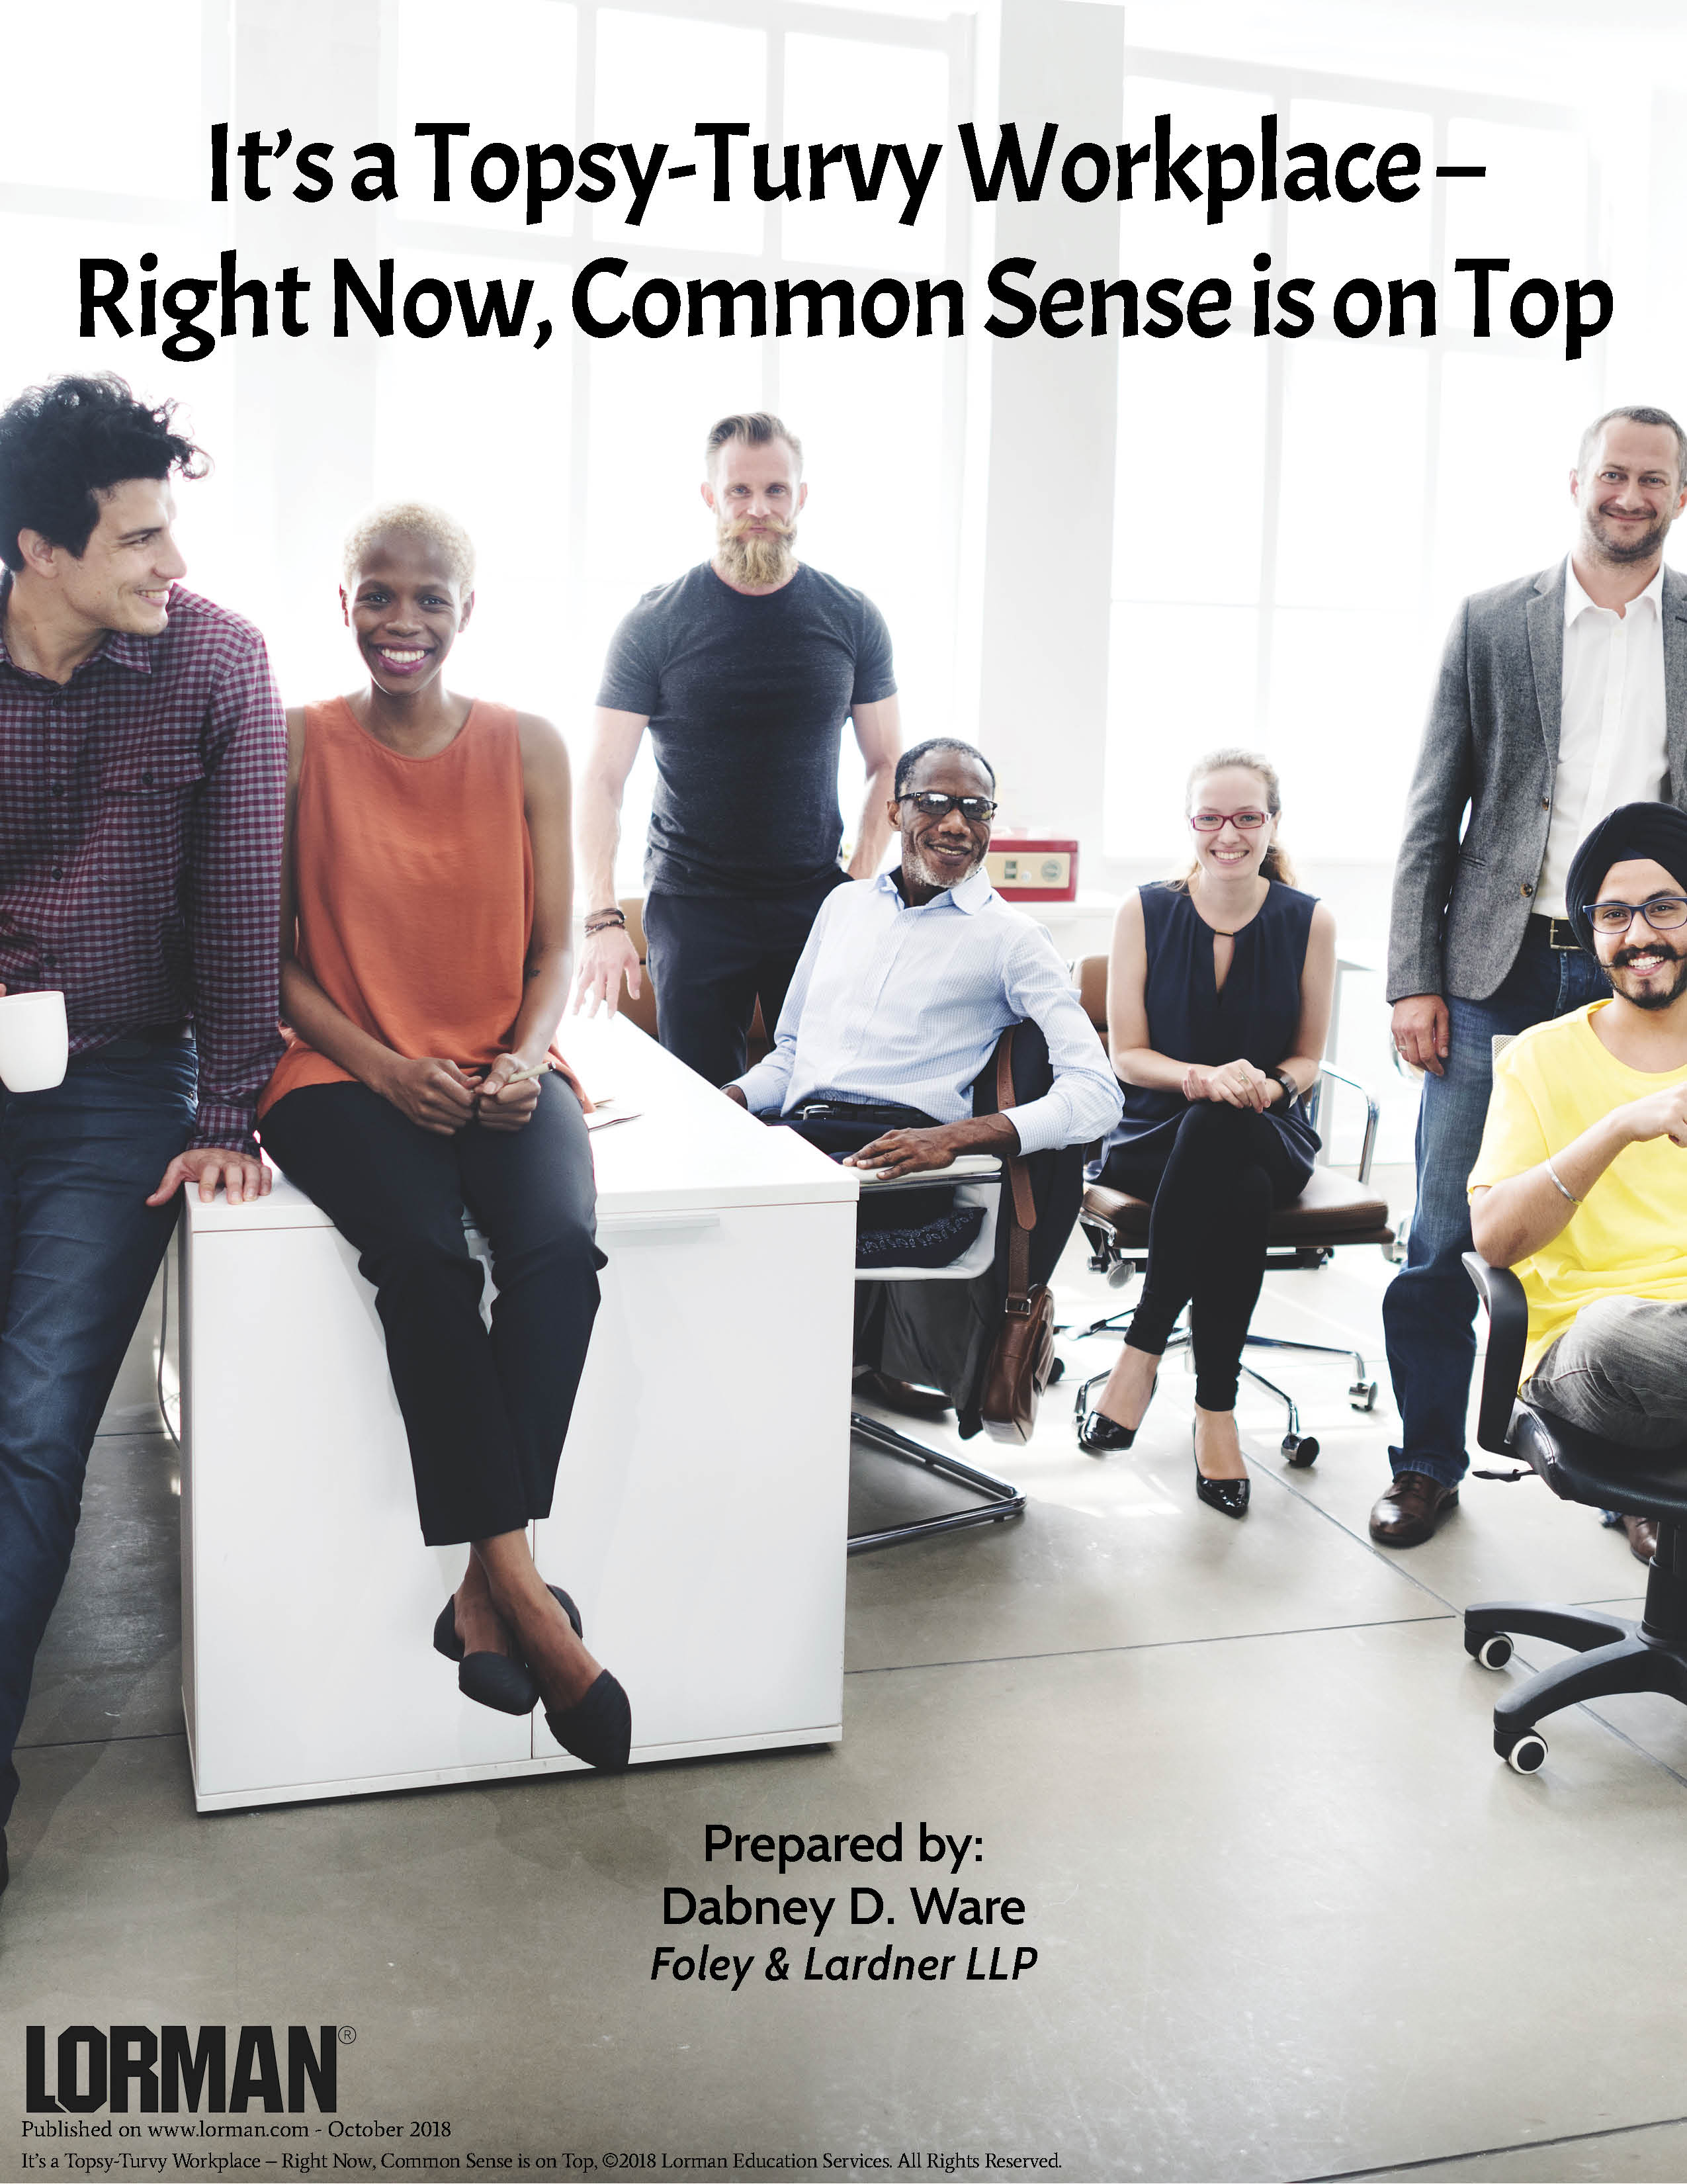 It's a Topsy-Turvy Workplace – Right Now, Common Sense is on Top